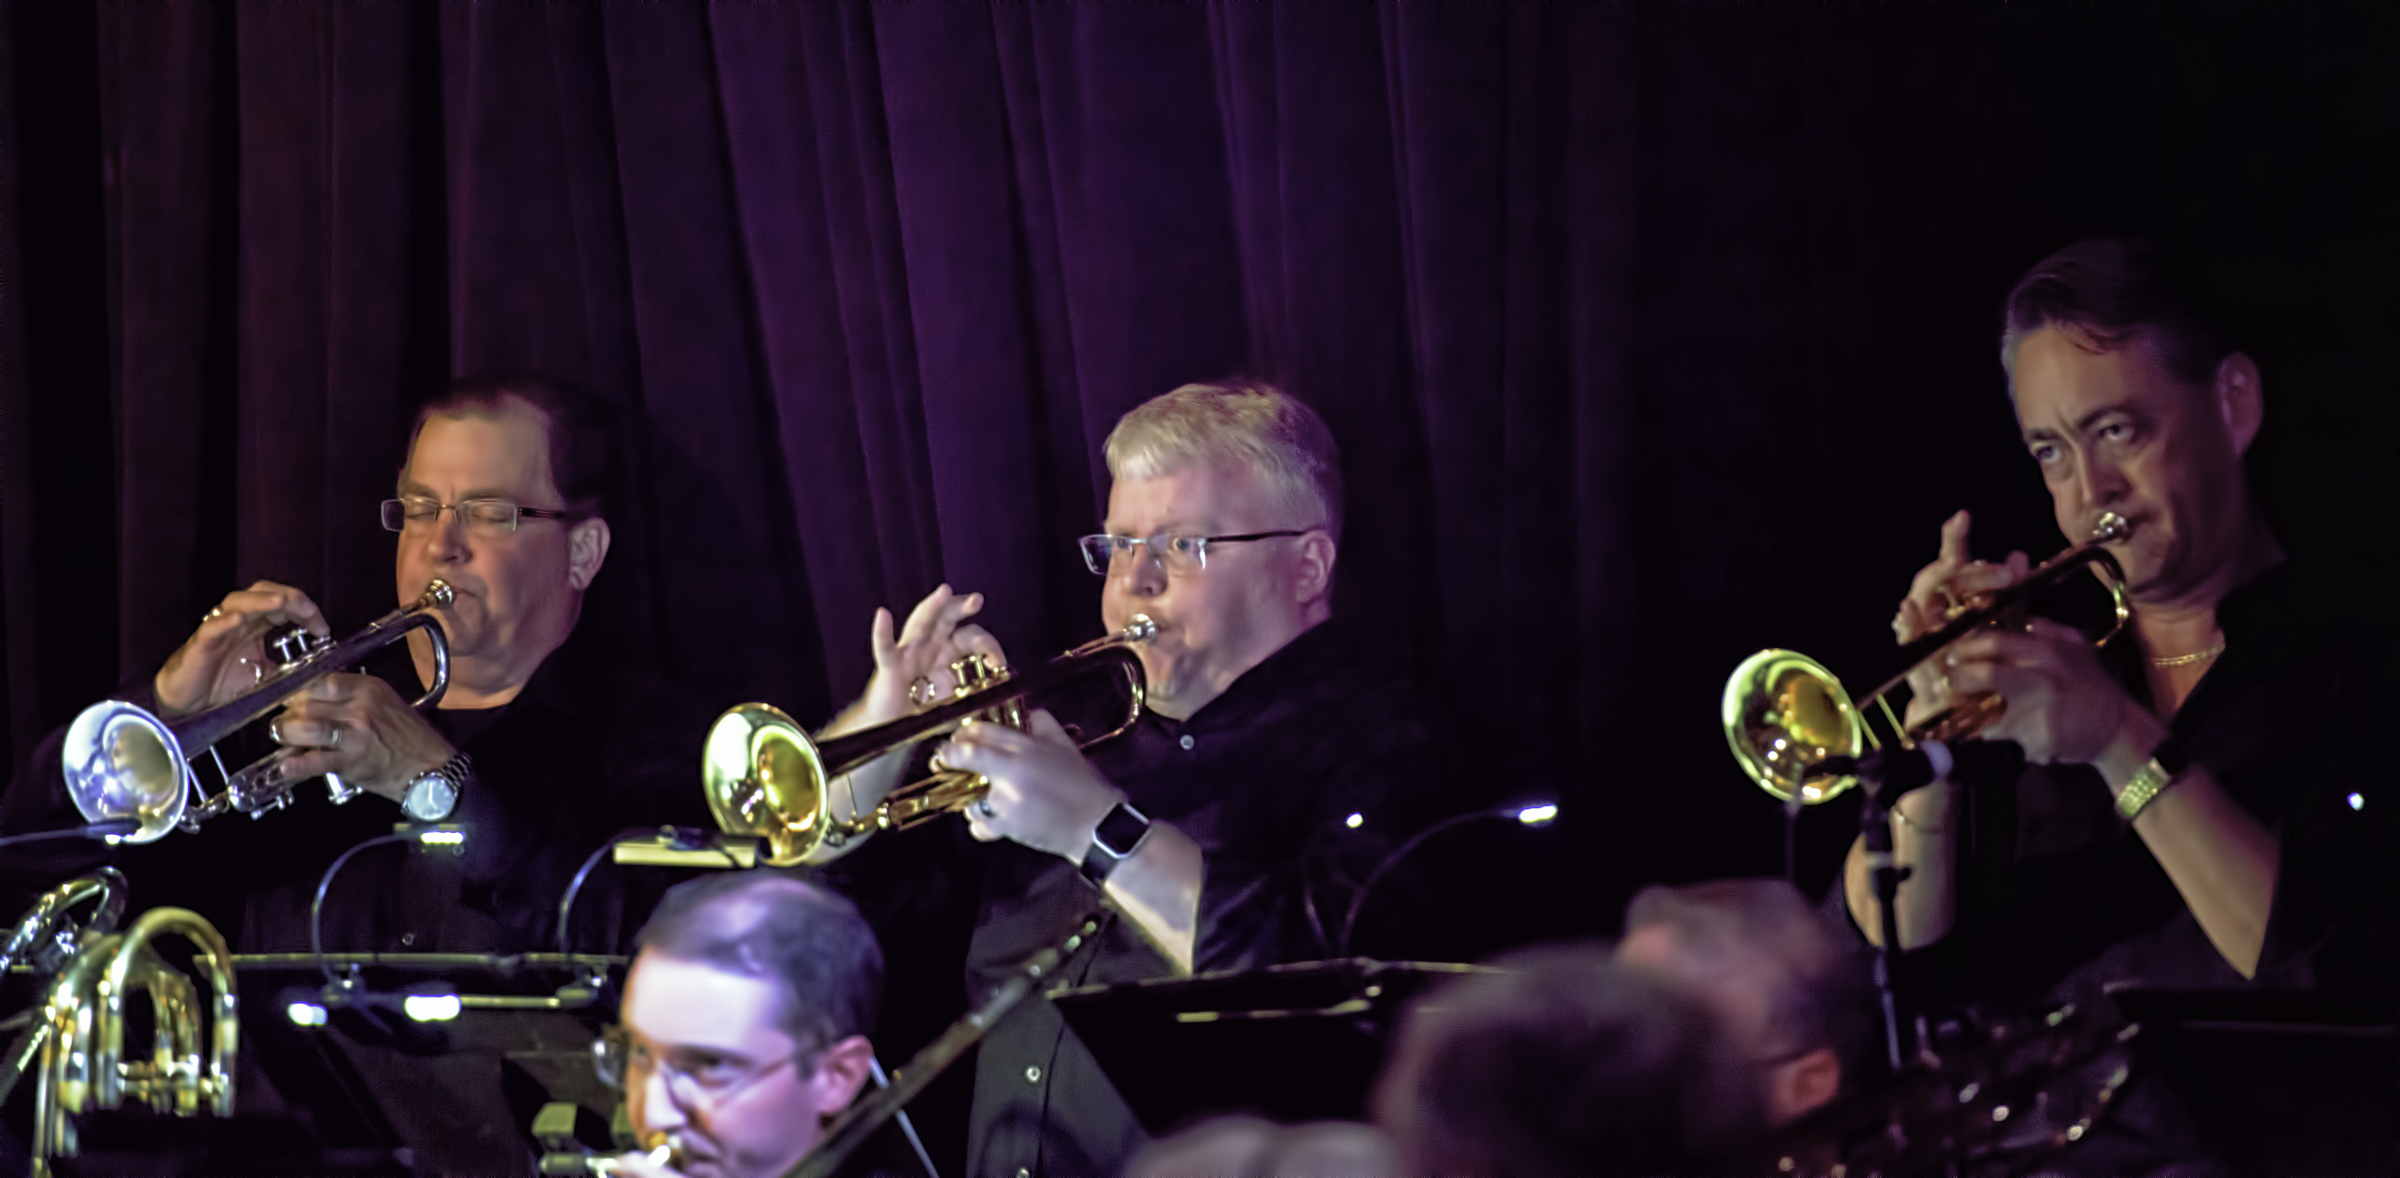 Chris Dolske, Dave Coolidge And Ray Nelson With Eric Rasmussen And Scottsdale Community College Jazz Orchestra Featuring John Hollenbeck At The Nash In Phoenix